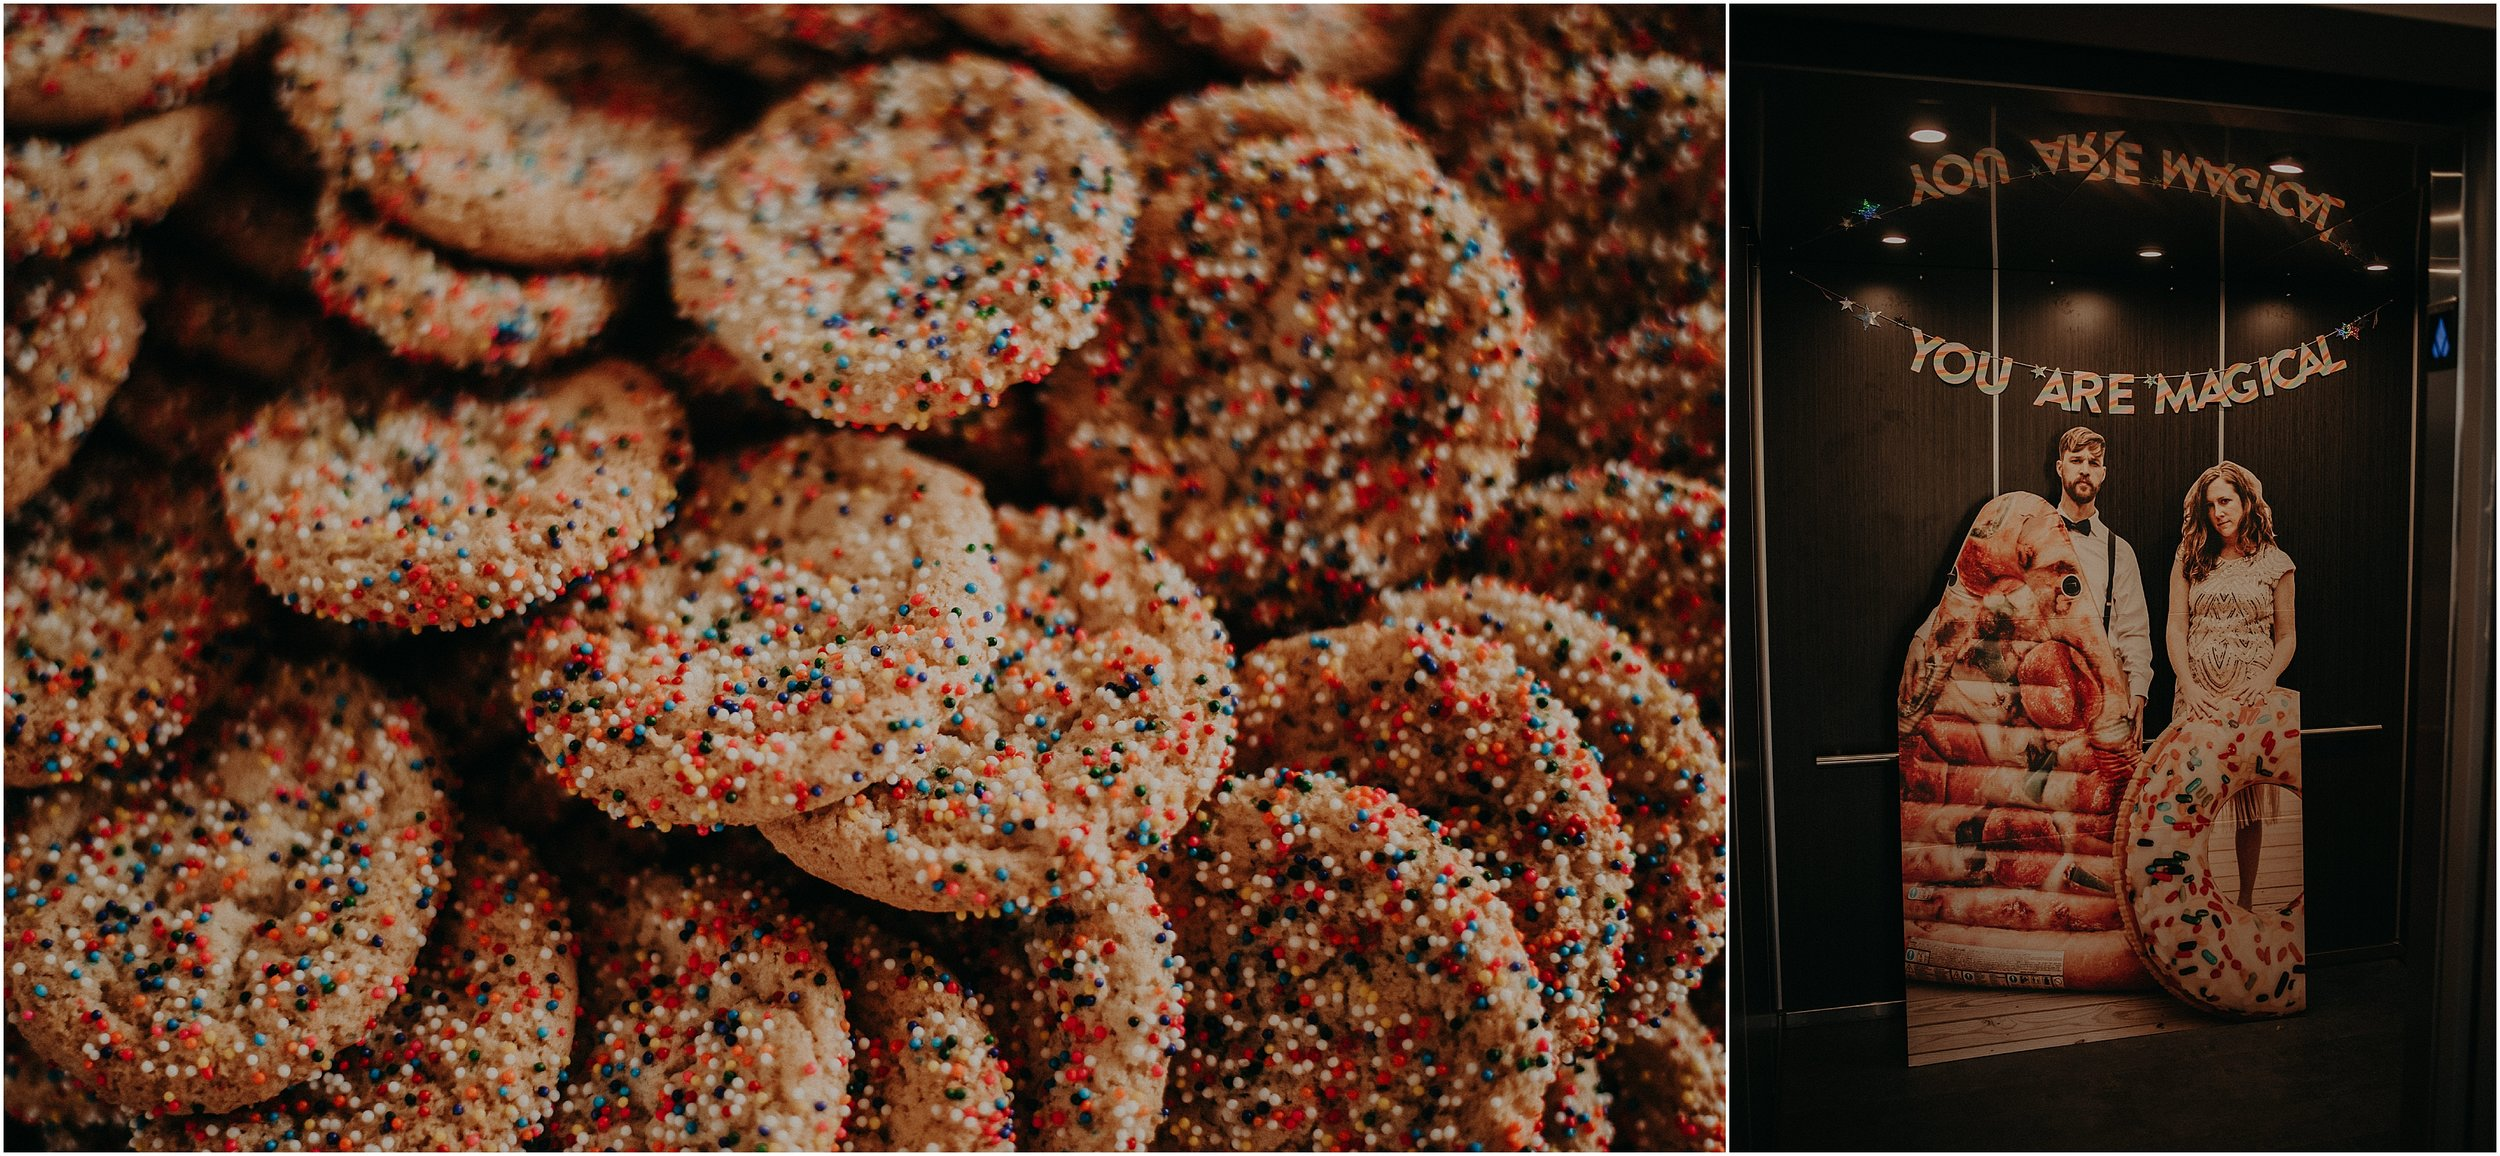 Sprinkle covered sugar cookies as part of their vivid wedding decor